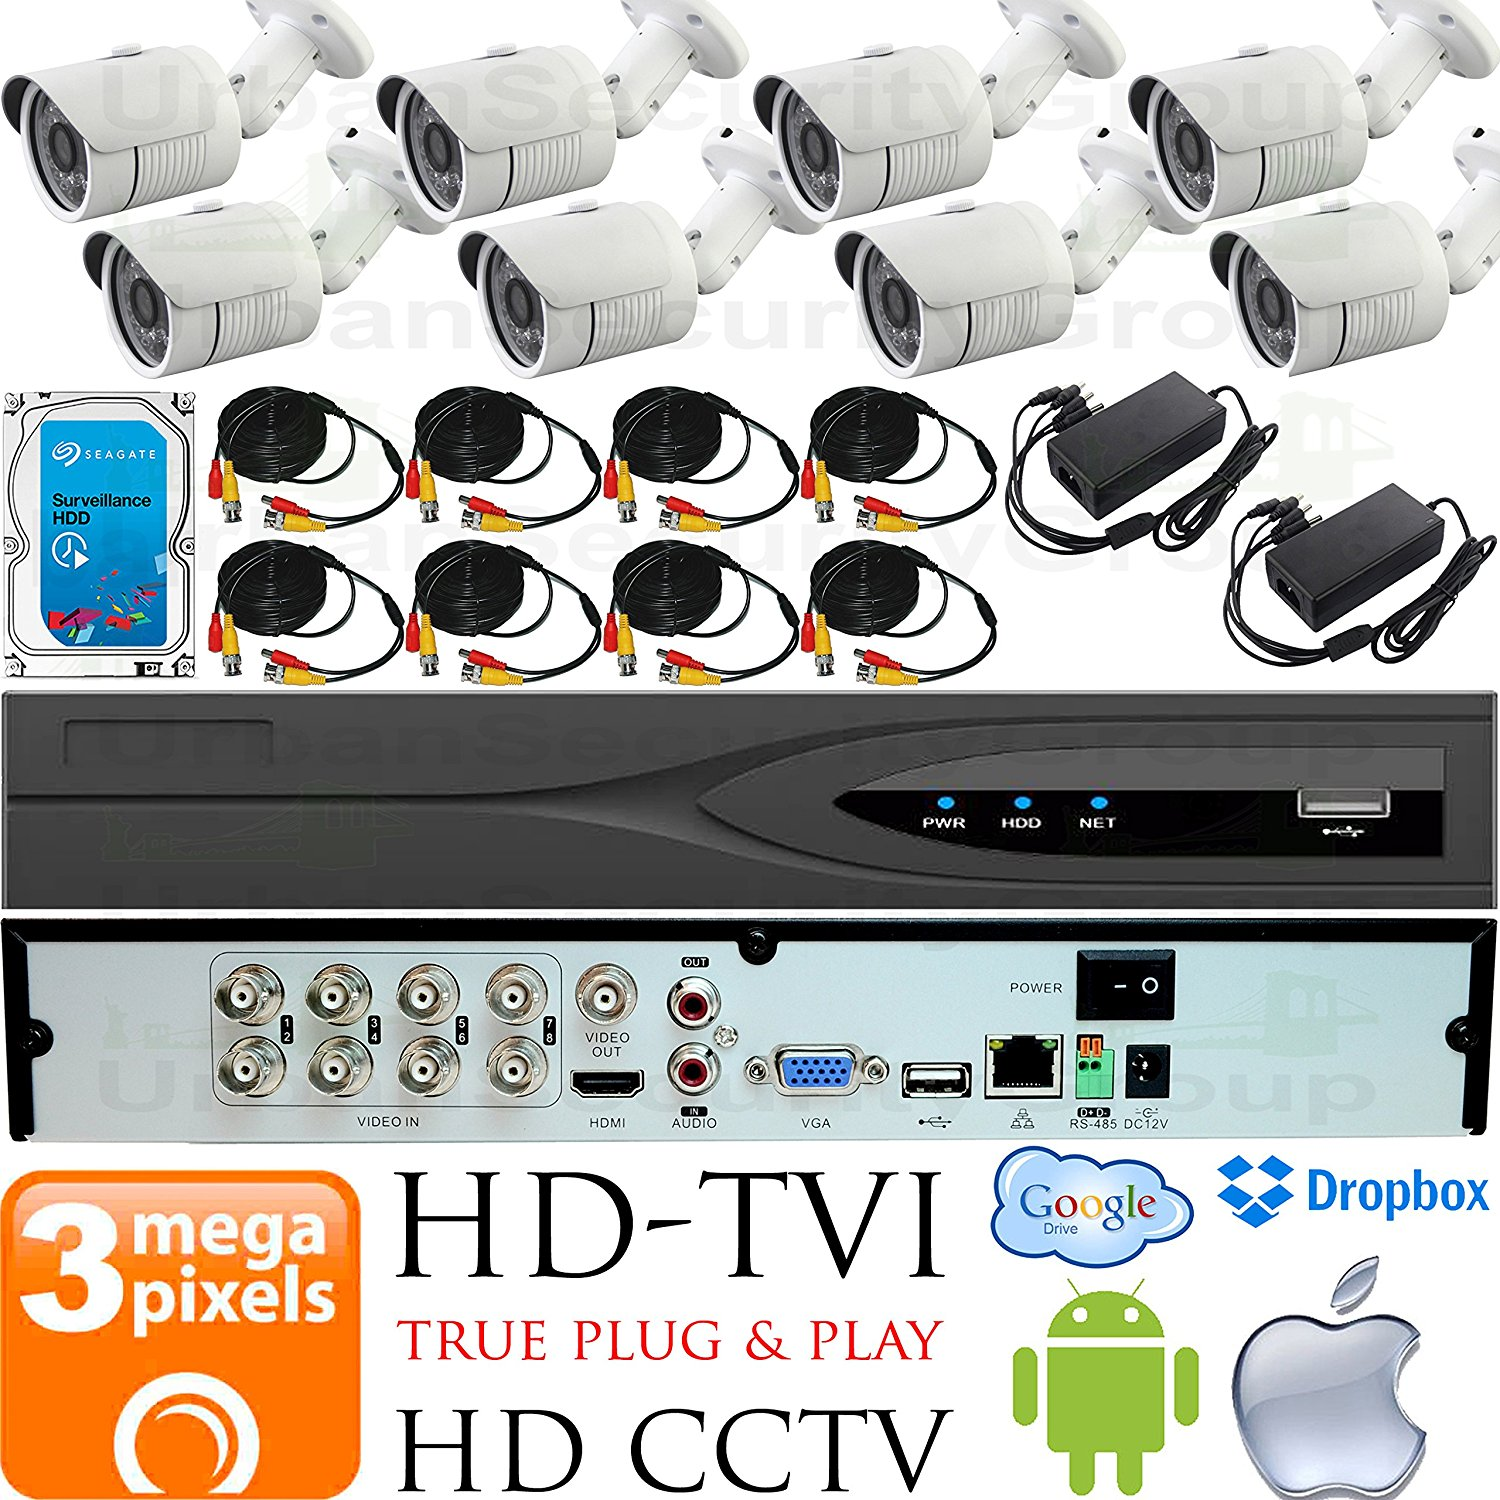 USG Business Grade 3MP HD-TVI 8 Camera CCTV Kit : 8x 3MP 2.8mm Wide Angle Bullet Cameras + 1x 8 Channel 3MP DVR + 1x 4TB HDD + 8x 100ft CCTV Cable + 2x 4 Channel Power Supply : Apple Android Phone App